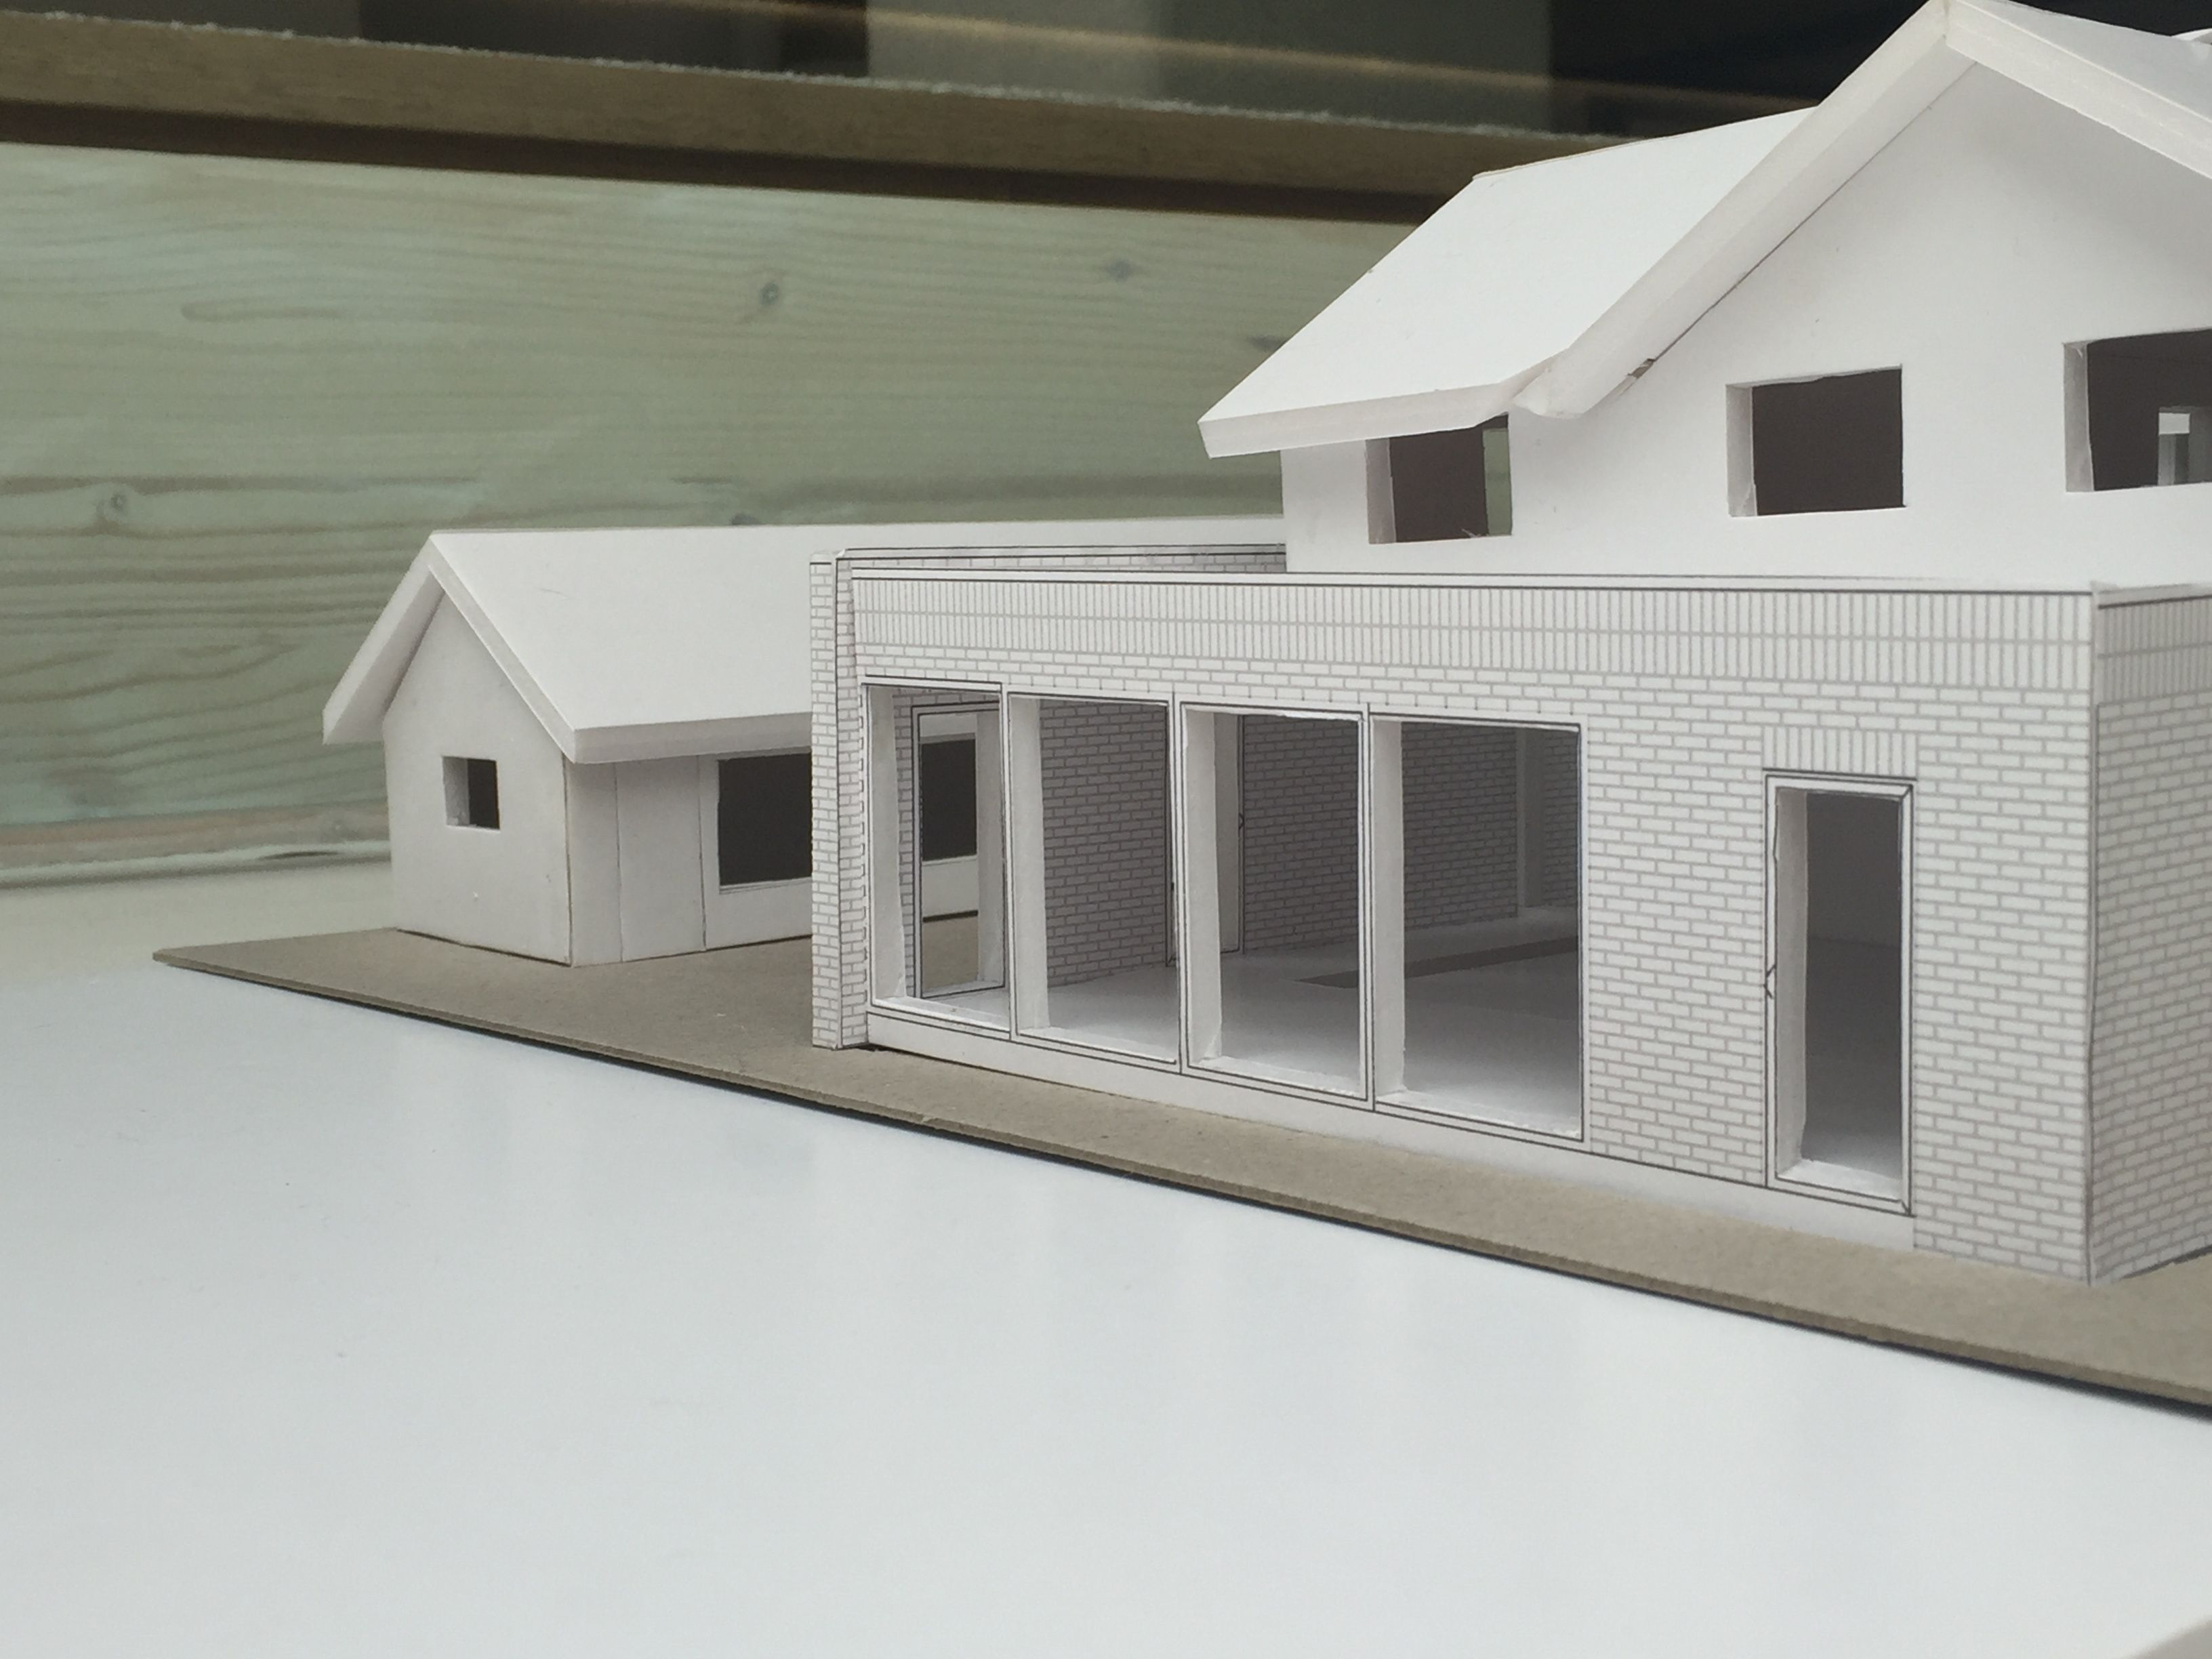 Annabelle Tugby Architects Architectural Foam Board Model Of Single Storey Brick Extension Architecture Architecture Model Architect